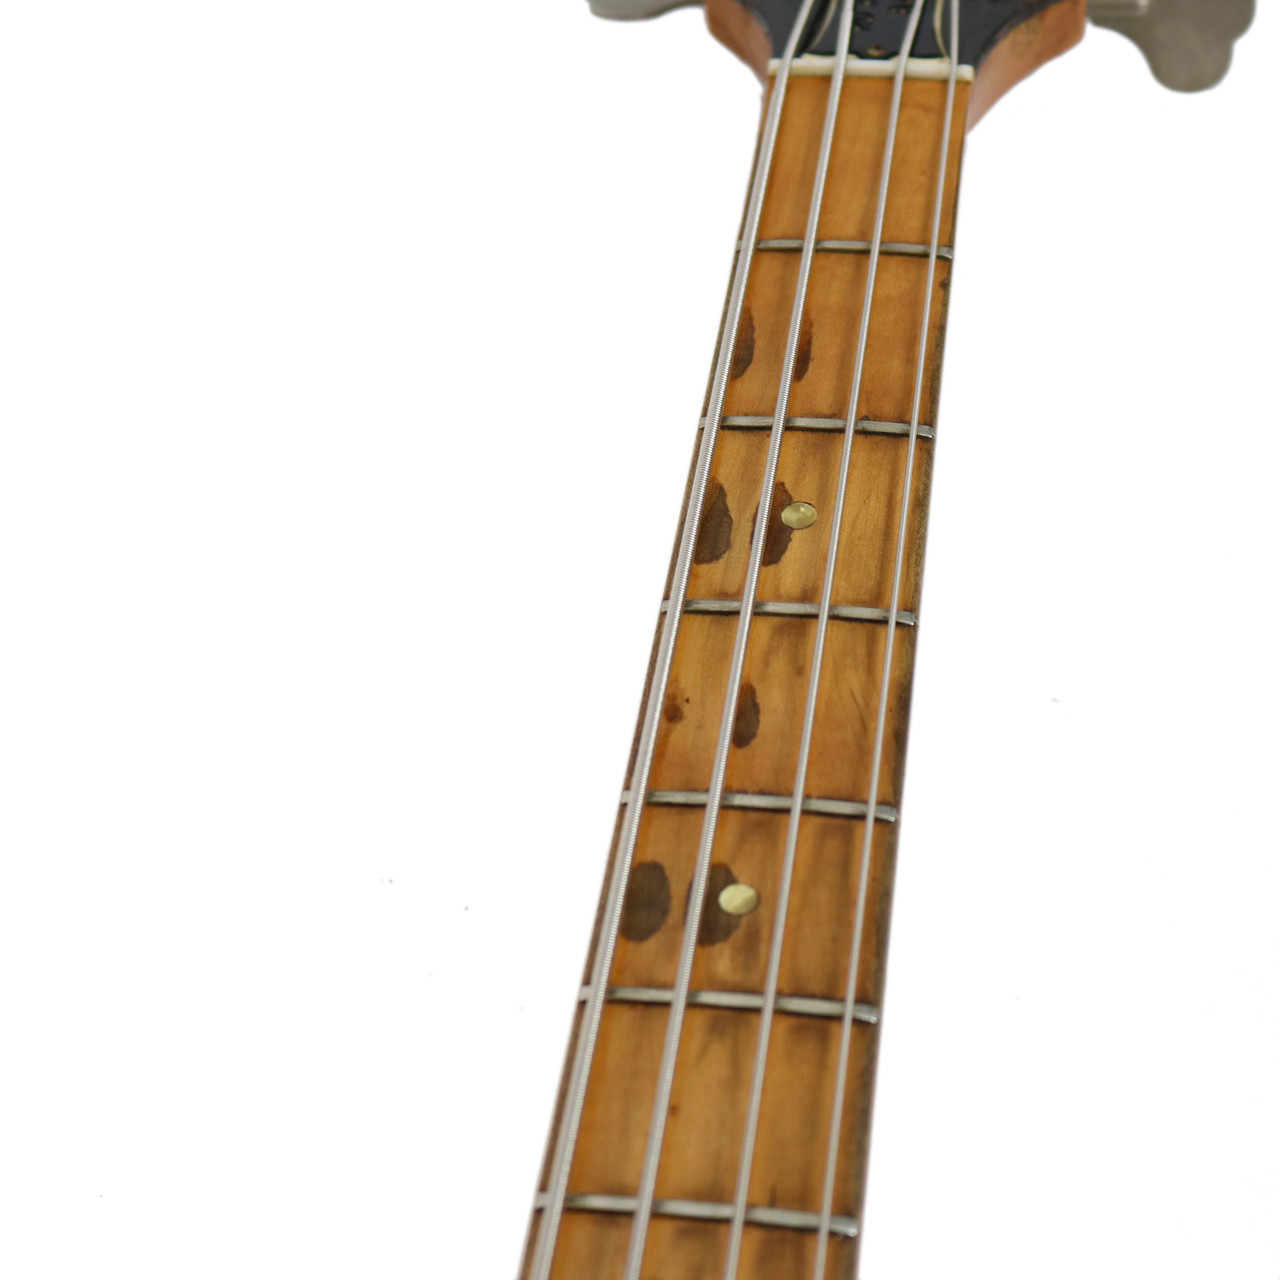 Mini Electric Gibson Rd Bass Question About Wiring Diagram Artist Guitar Vintage 1979 Natural Grabber Signature